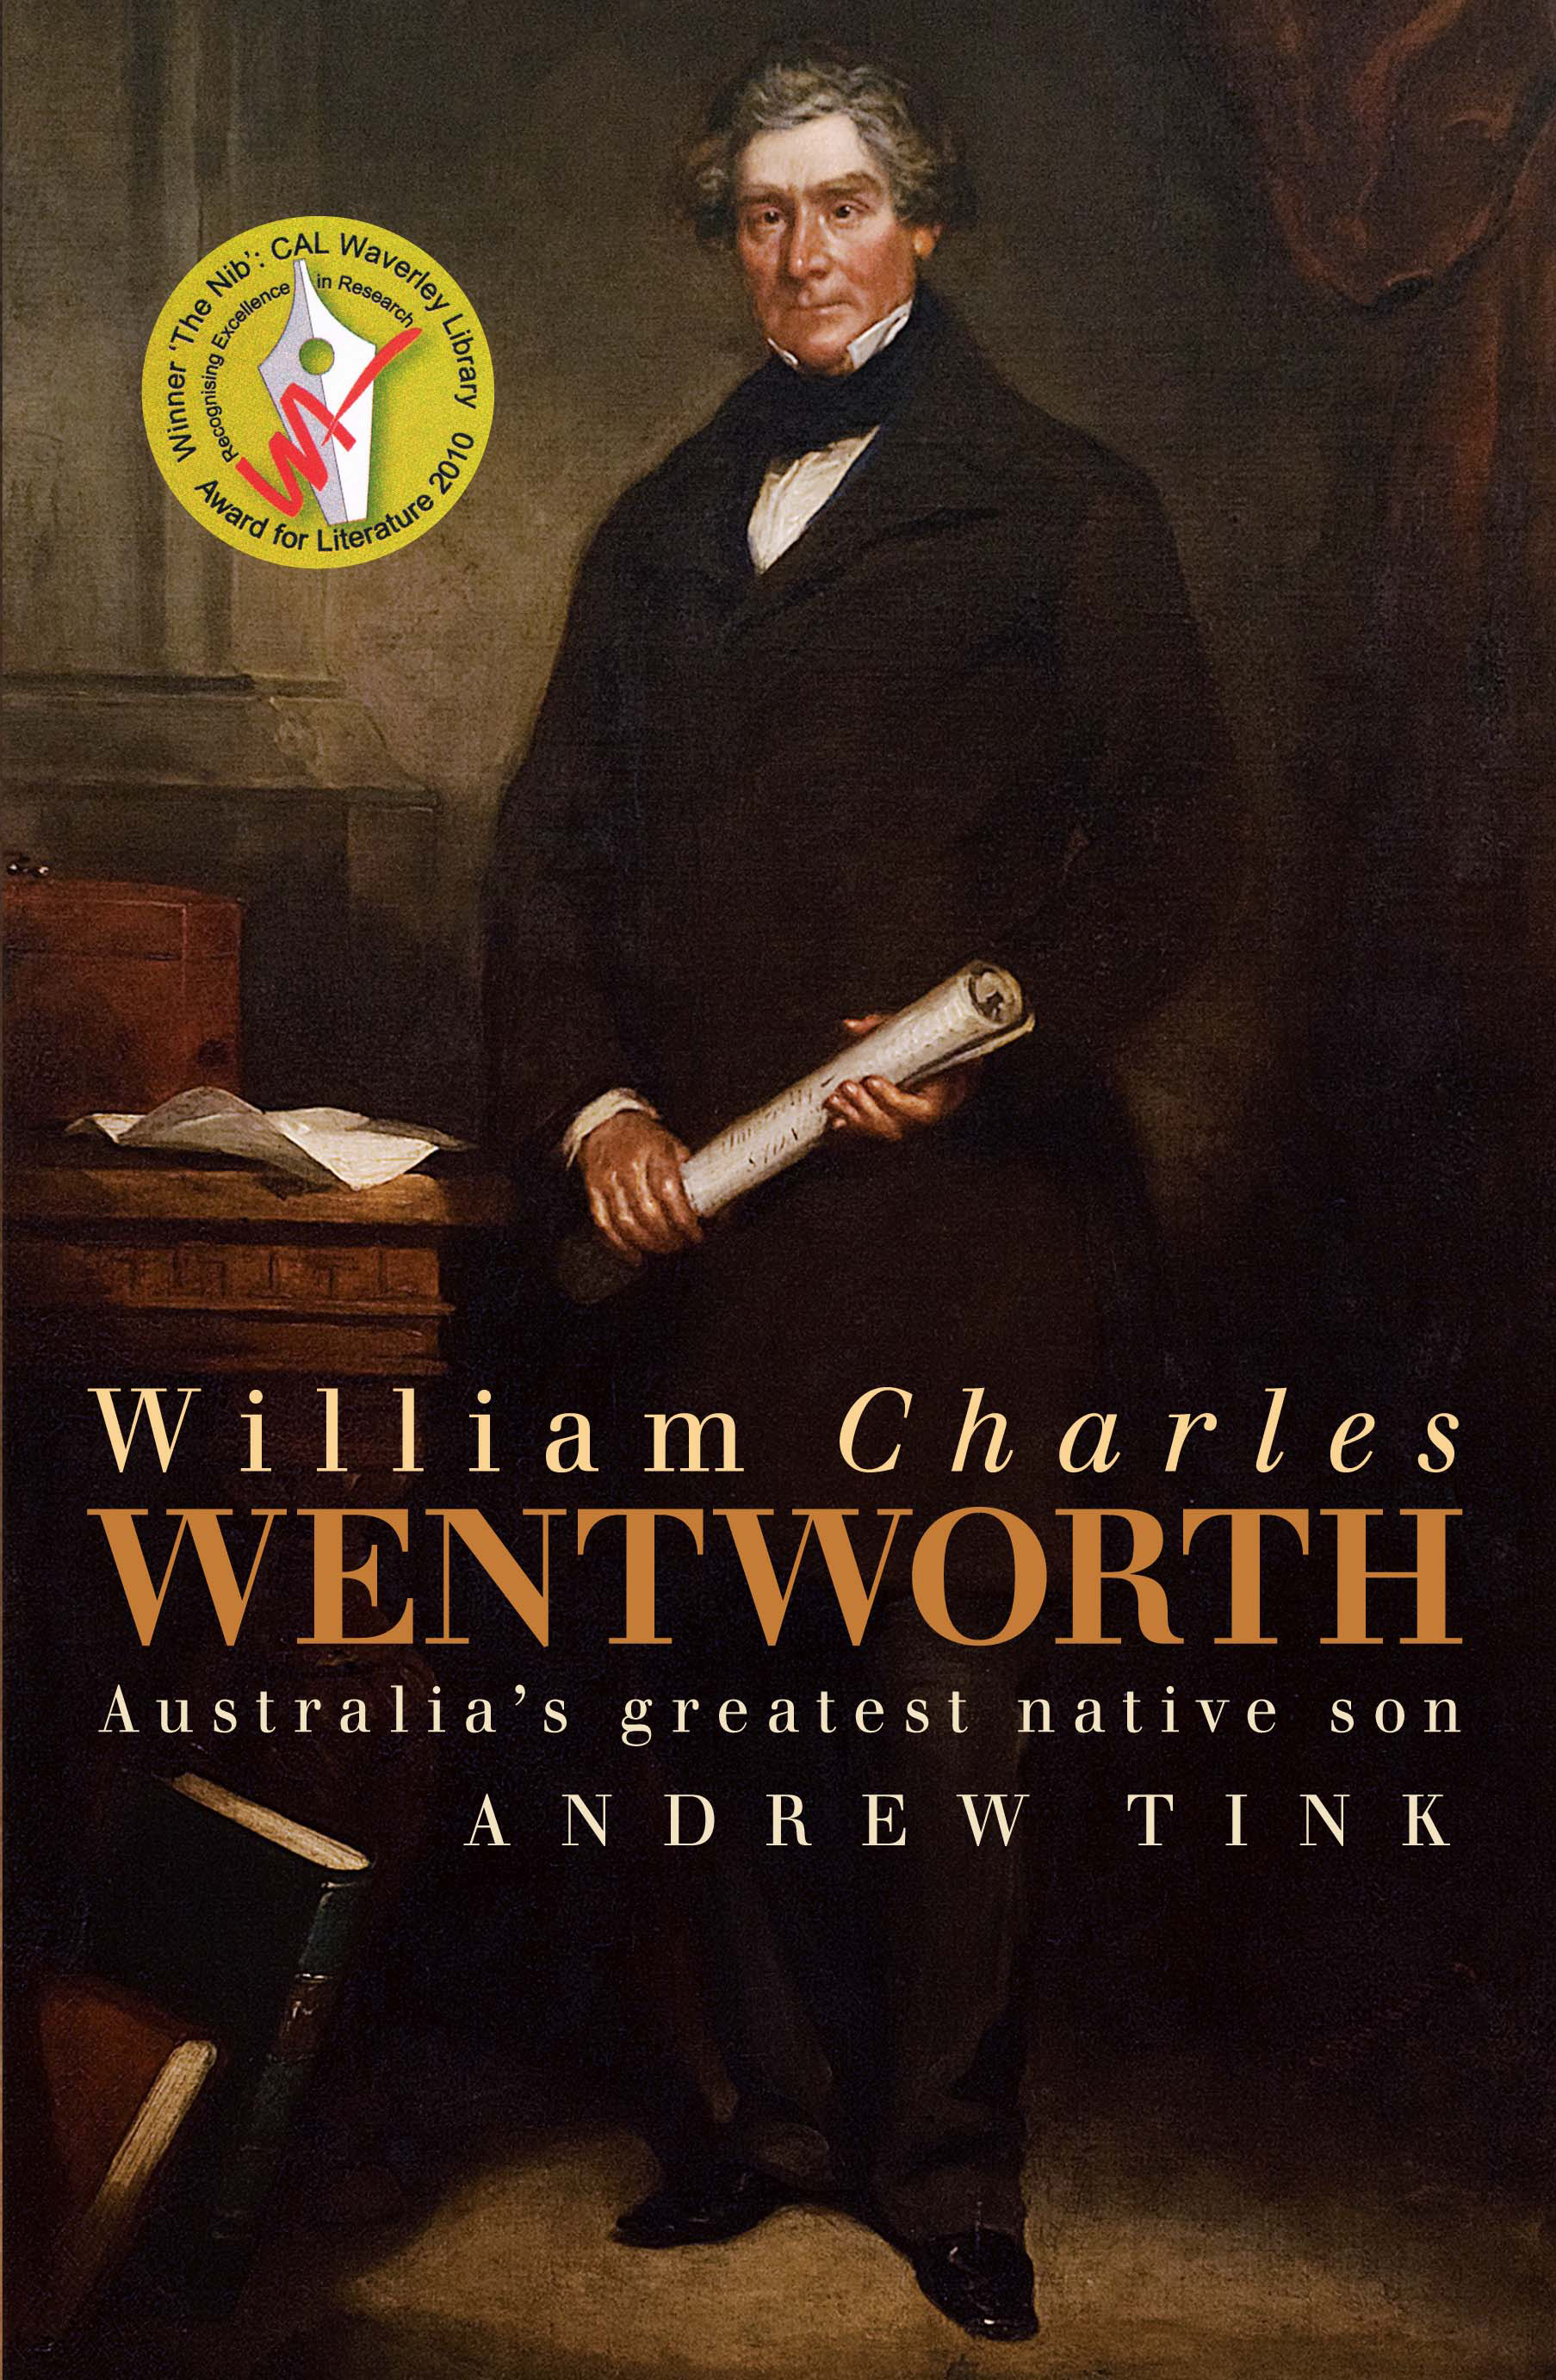 a biography of william charles wentworth an australian poet William charles wentworth: australia's greatest native son  andrew tink's fine biography of william charles wentworth takes its subtitle –  wentworth was .